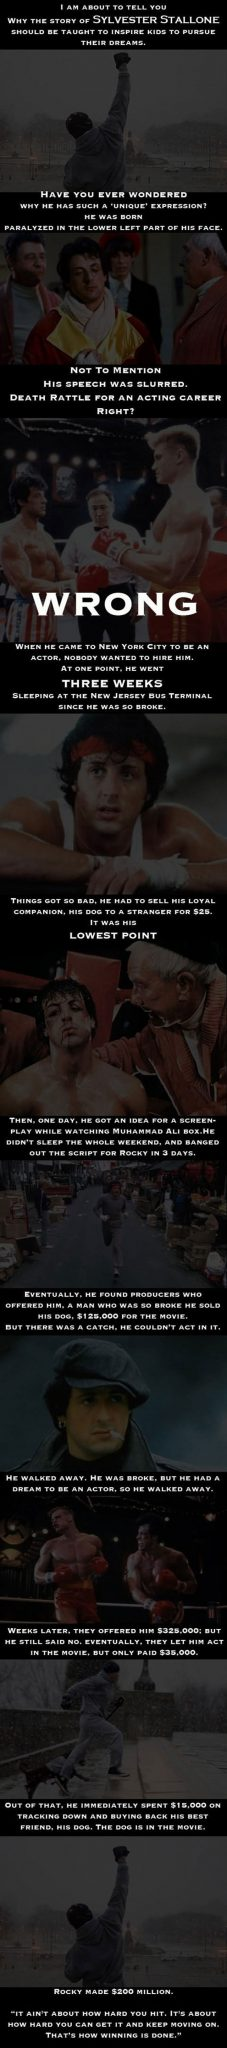 rocky-lessons-stallone-inspiration